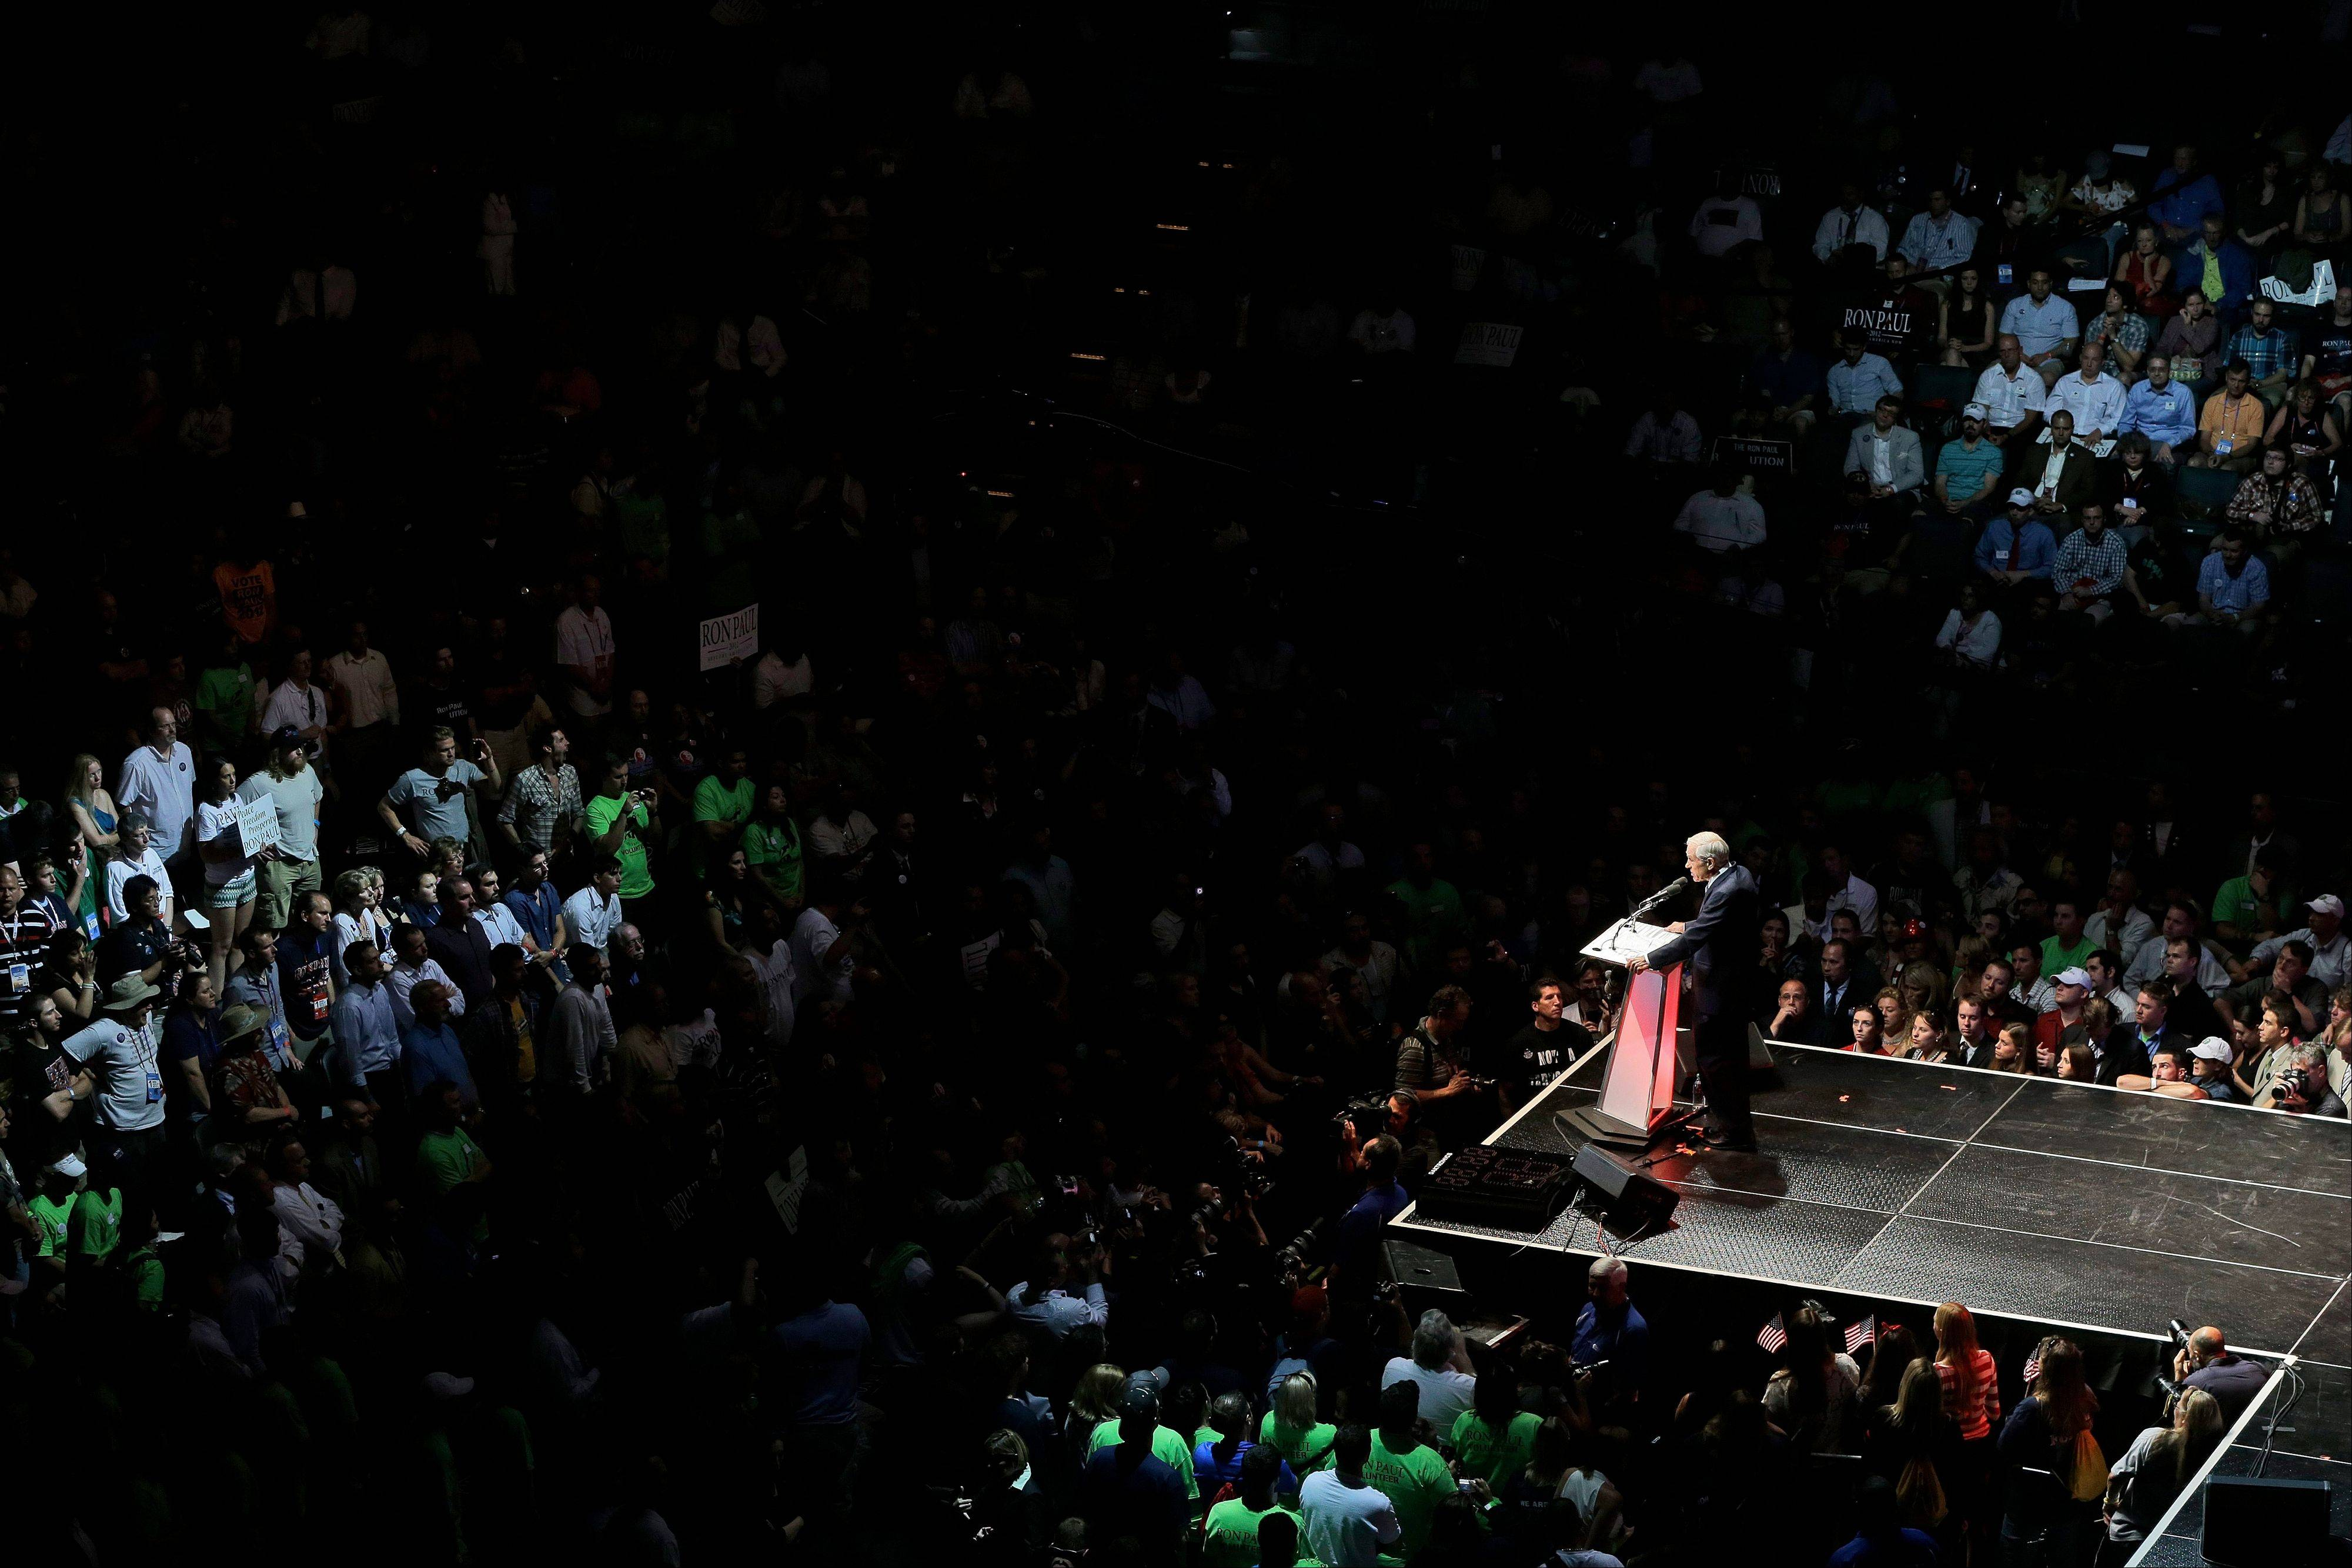 Rep. Ron Paul, R-Texas, speaks at a rally at the University of South Florida Sun Dome on the sidelines of the Republican National Convention in Tampa, Fla., on Sunday, Aug. 26, 2012.